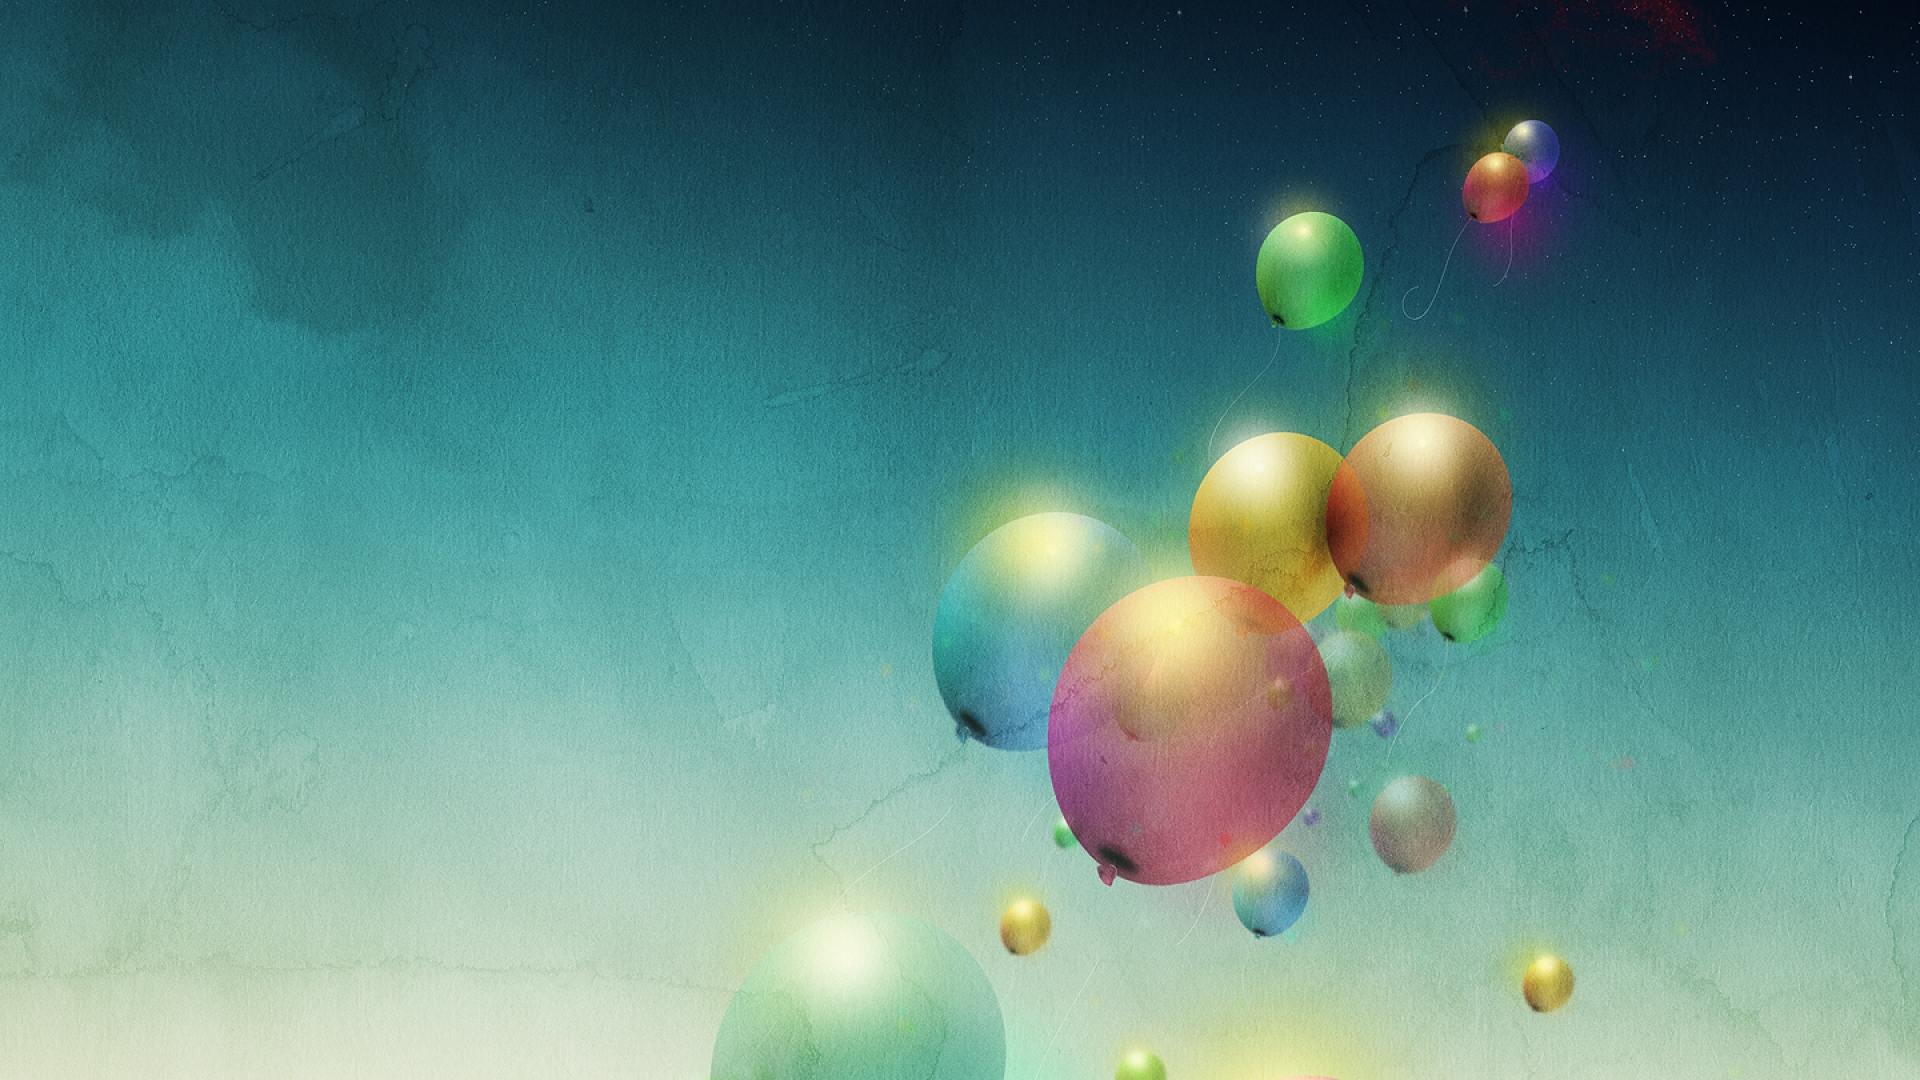 balloons wallpapers - photo #8